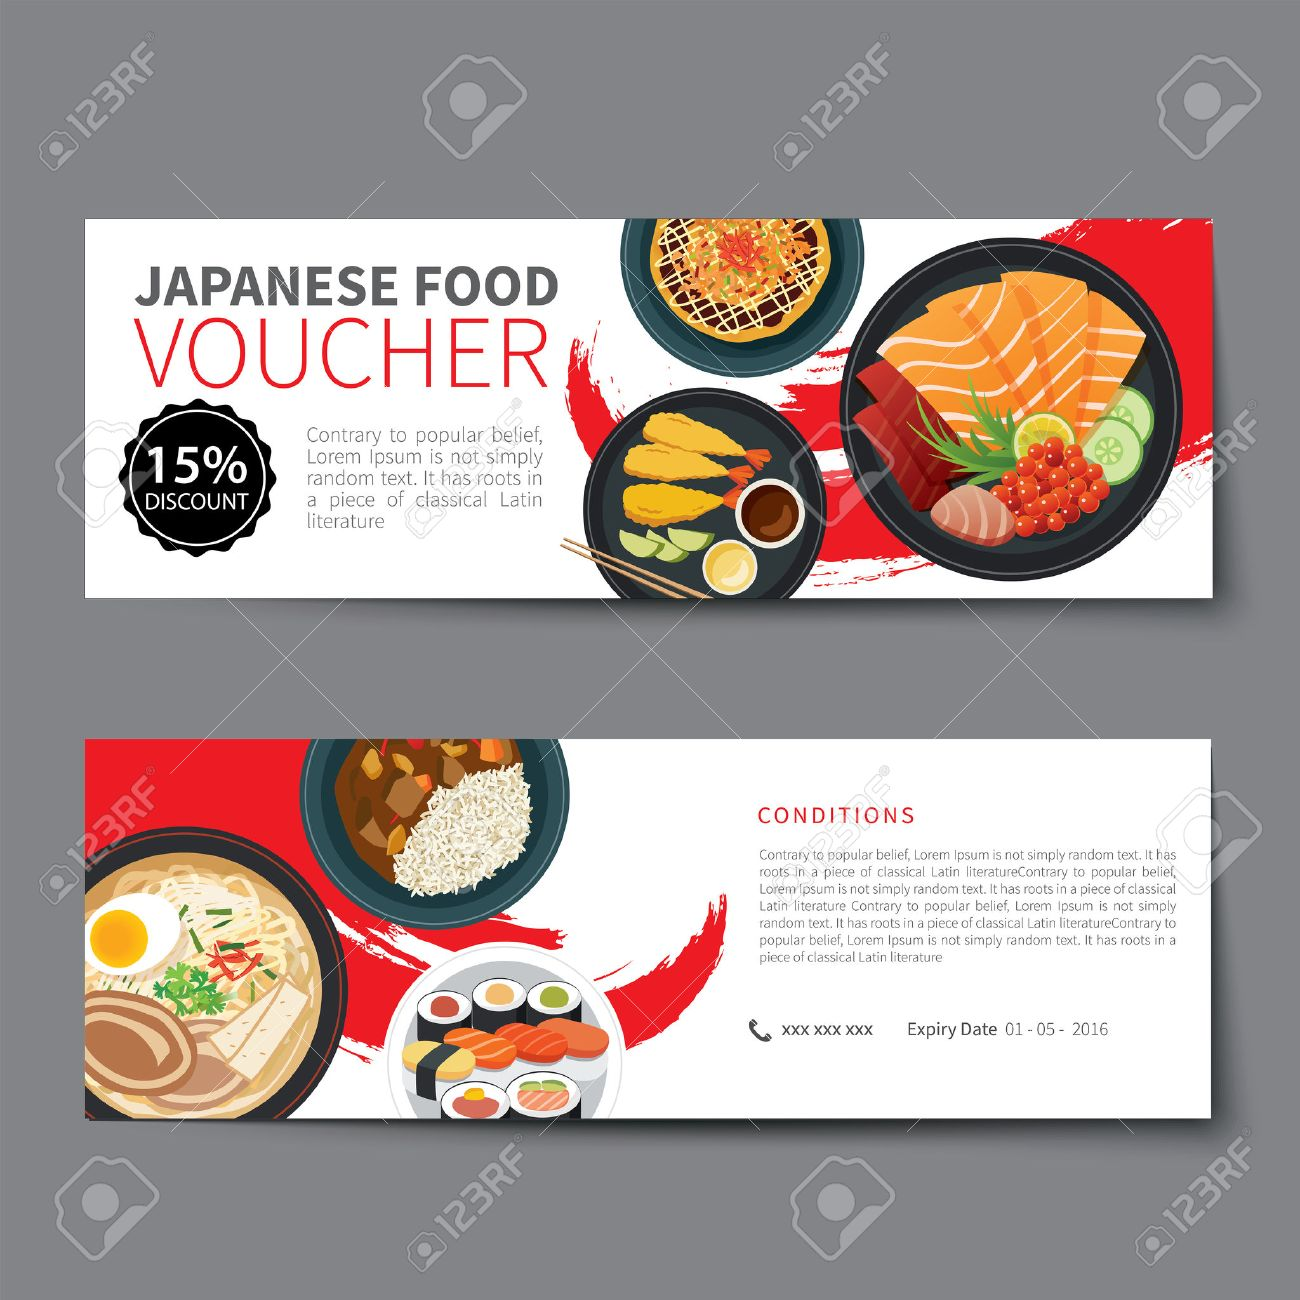 Japanese Food Voucher Discount Template Flat Design Royalty Free ...